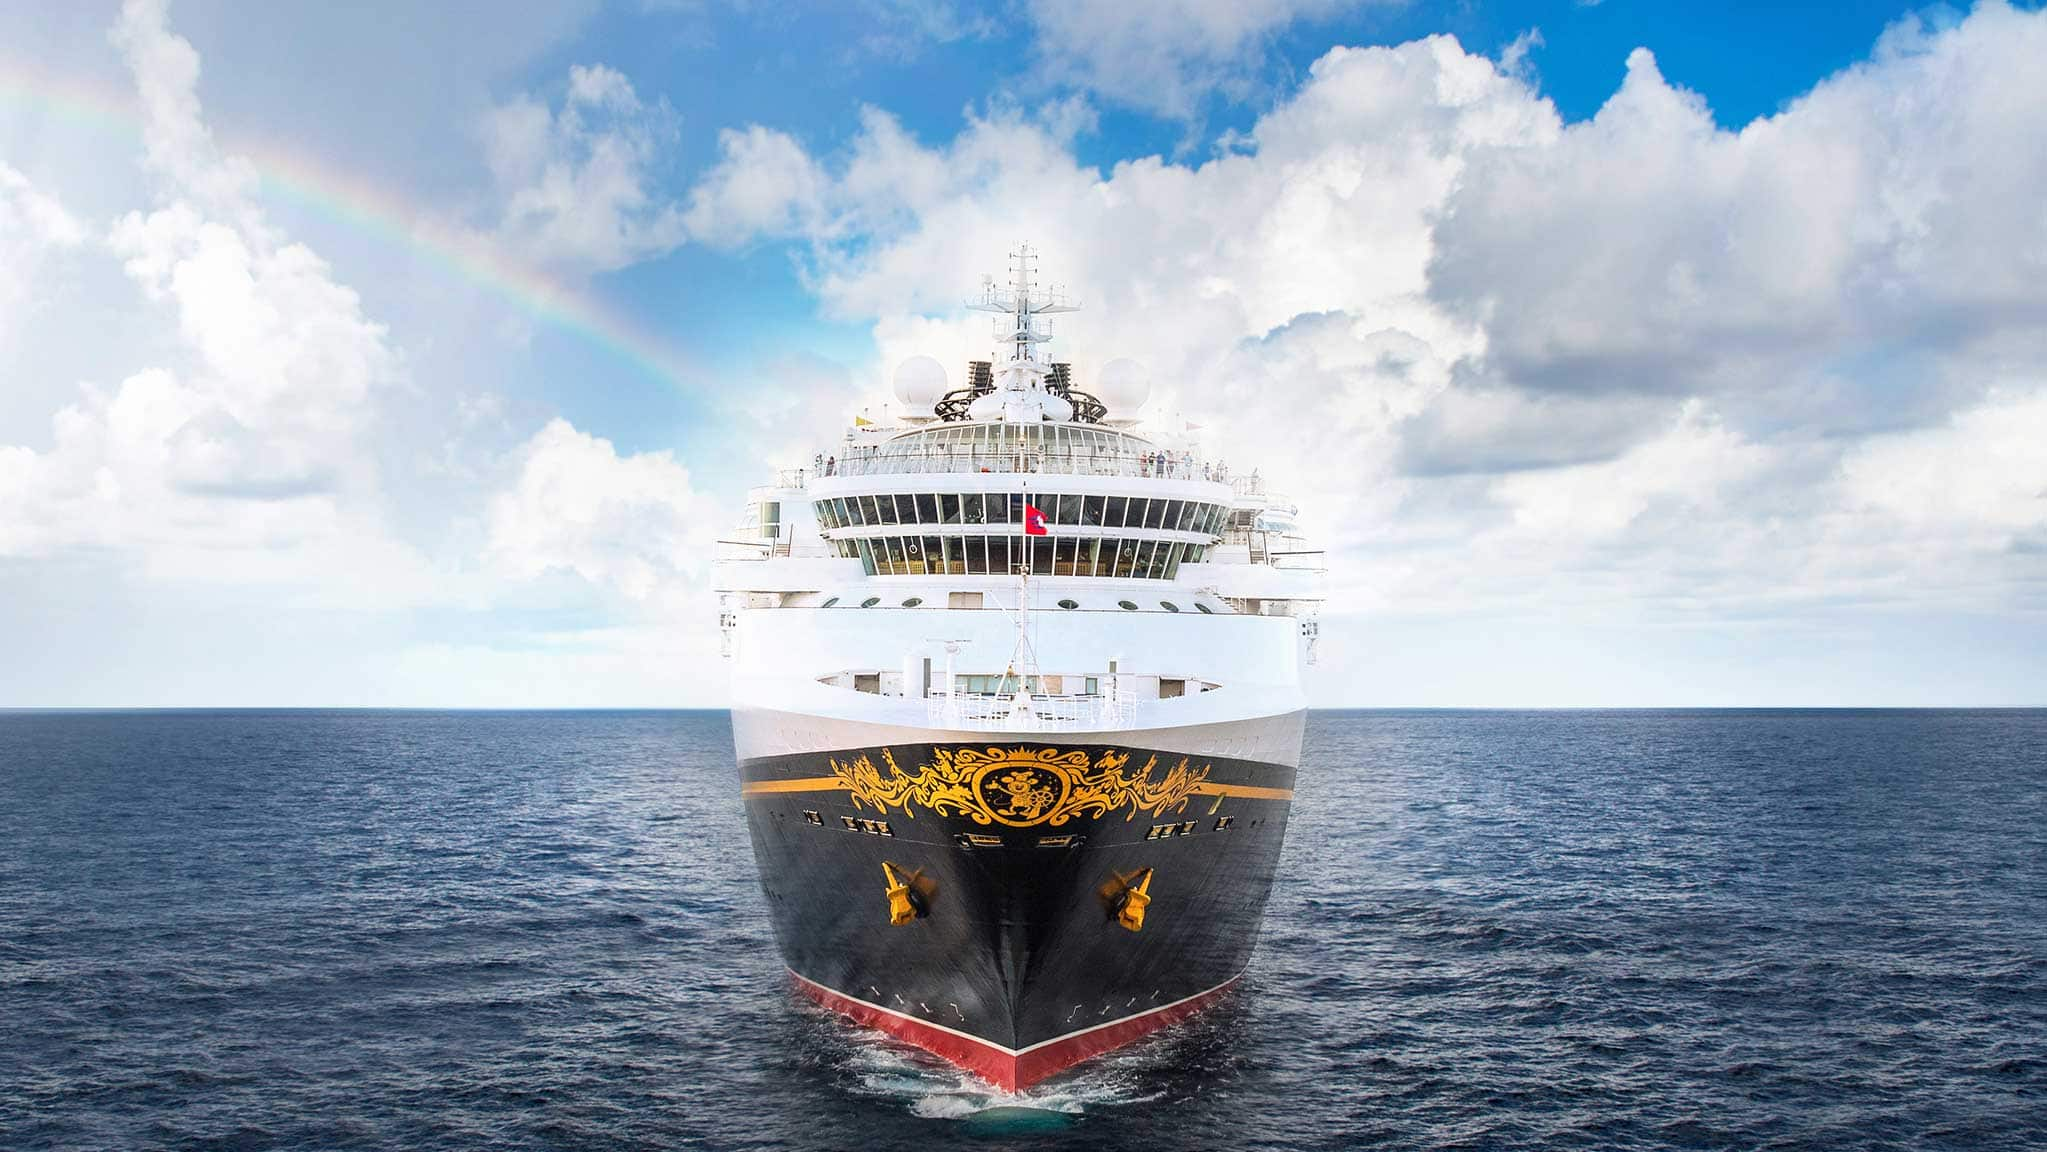 A Disney Cruise Ship Cuts Through The Ocean With Clouds And Rainbow In Sky